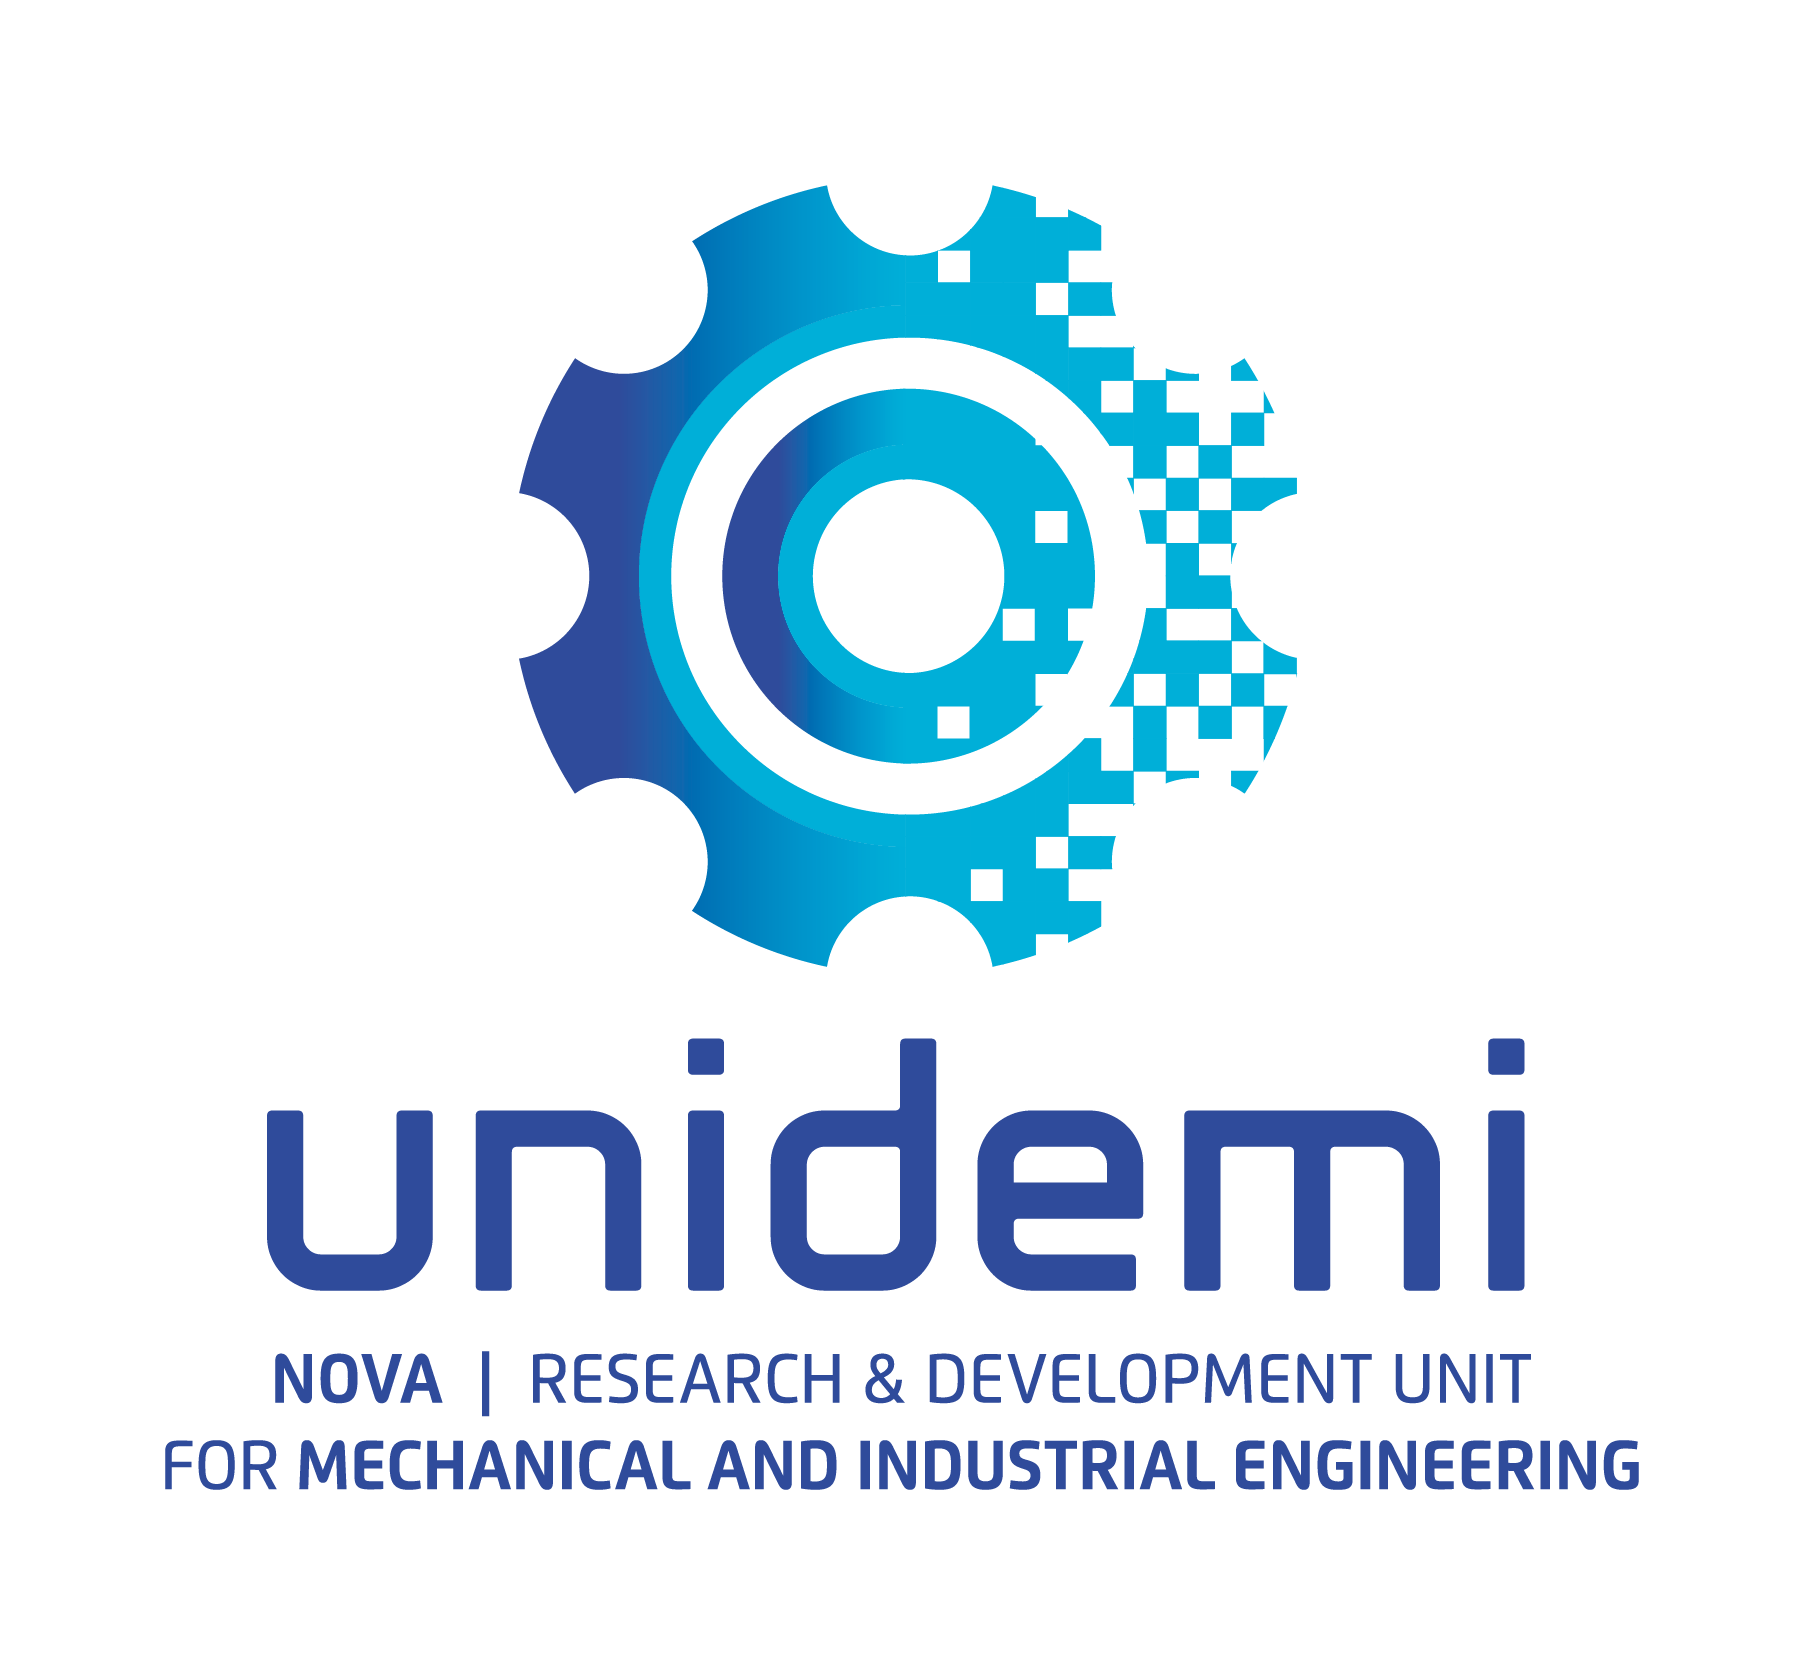 Research and Development Unit in Mechanical and Industrial Engineering